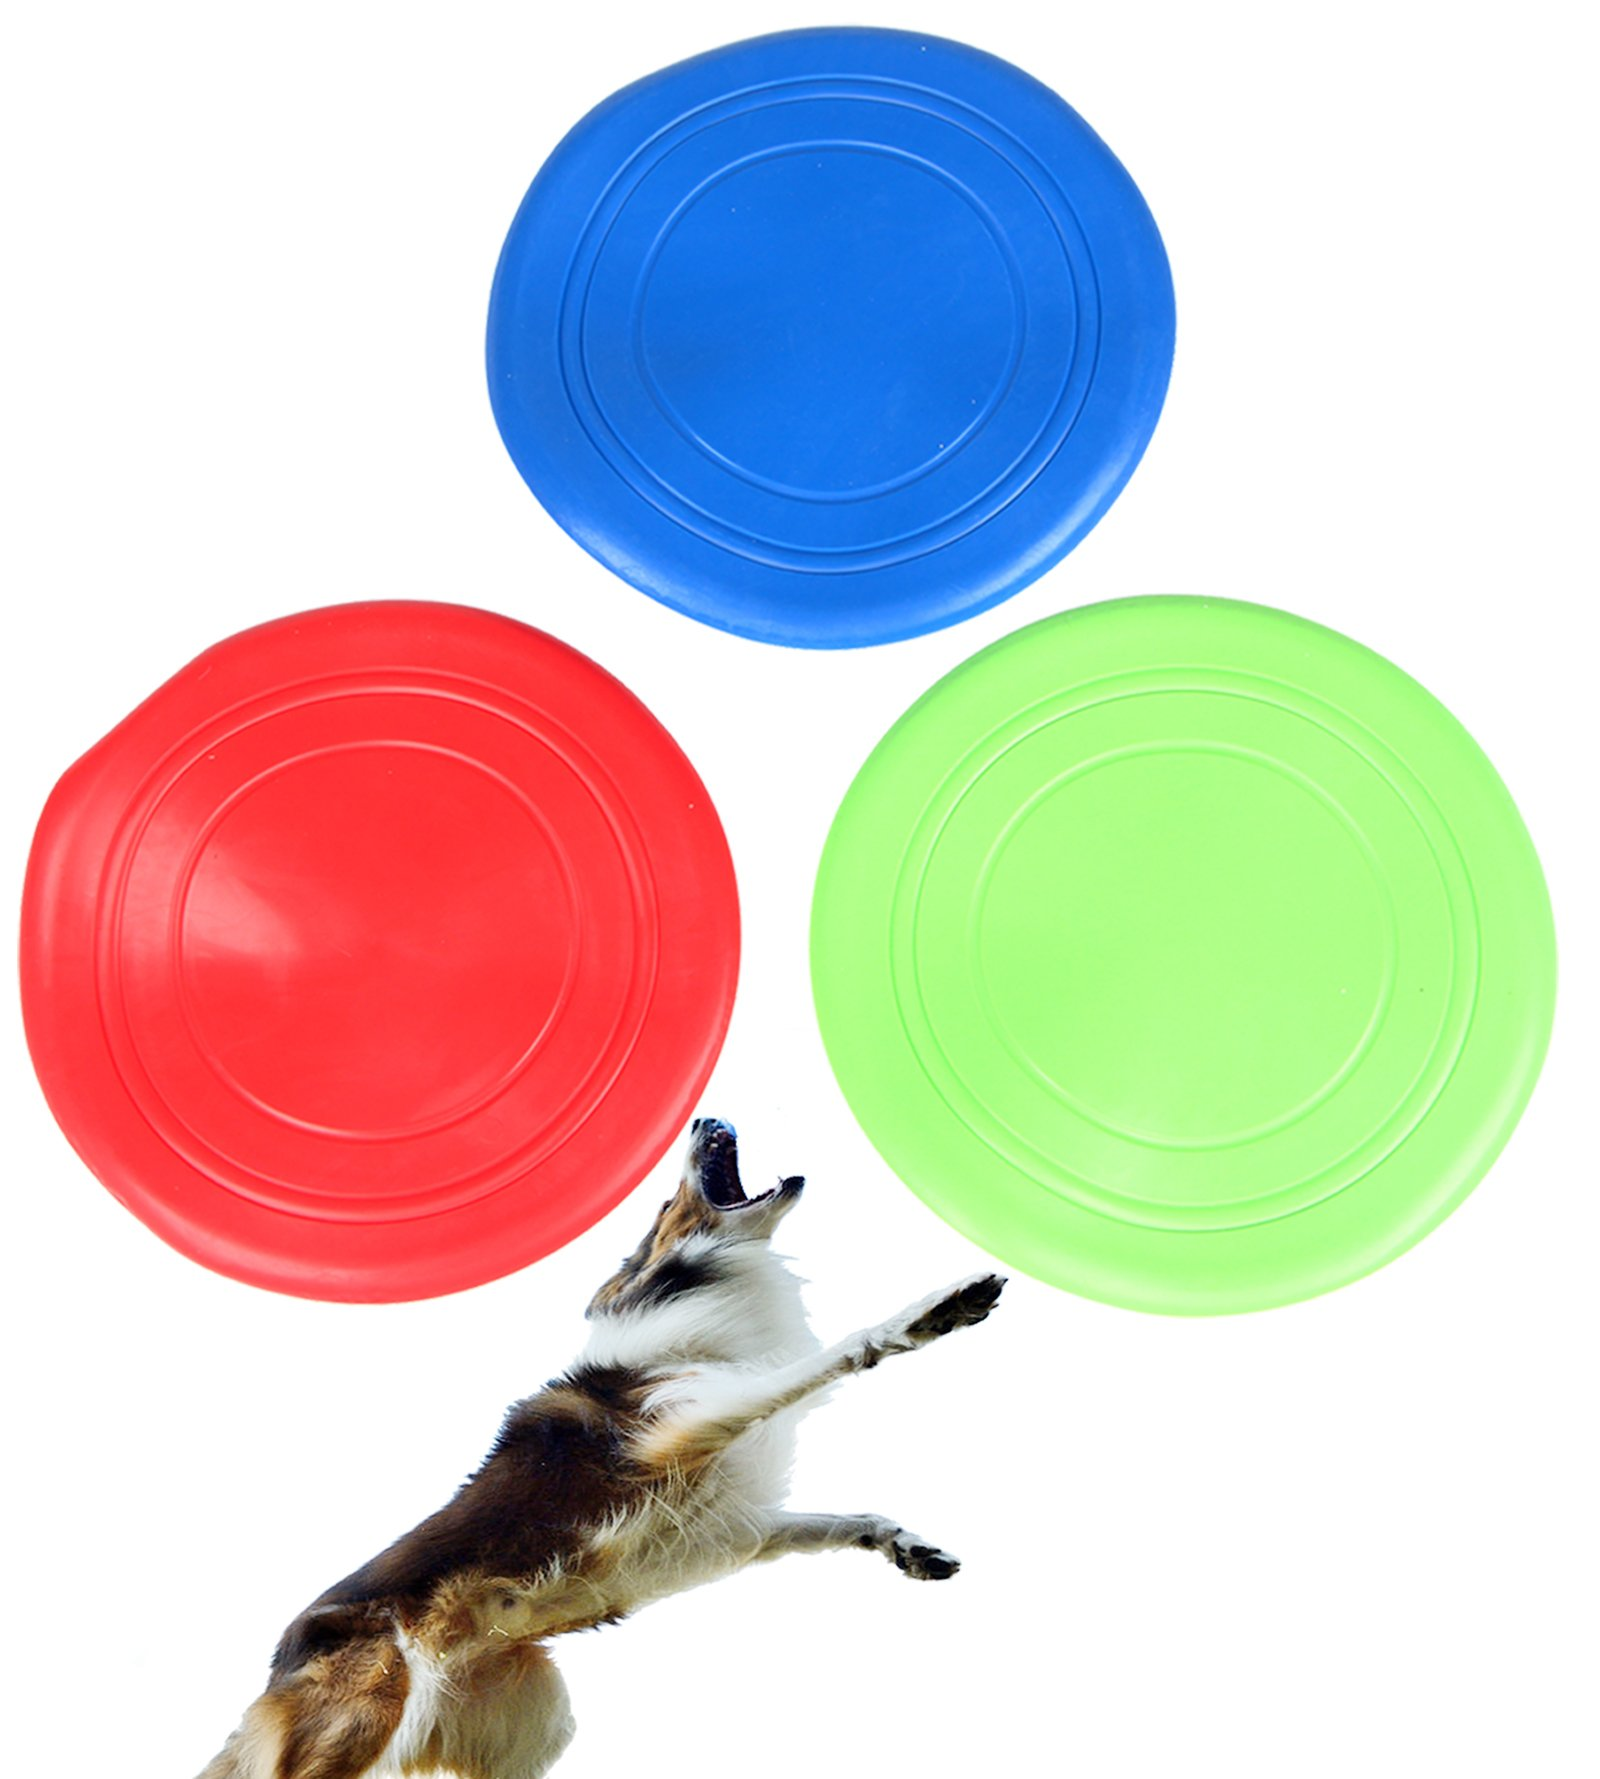 Pustor Dog Frisbee Disk Soft Silicone Flying Disc Pet Toy Training For Large, Pack of 3 Non-Toxic Silicone